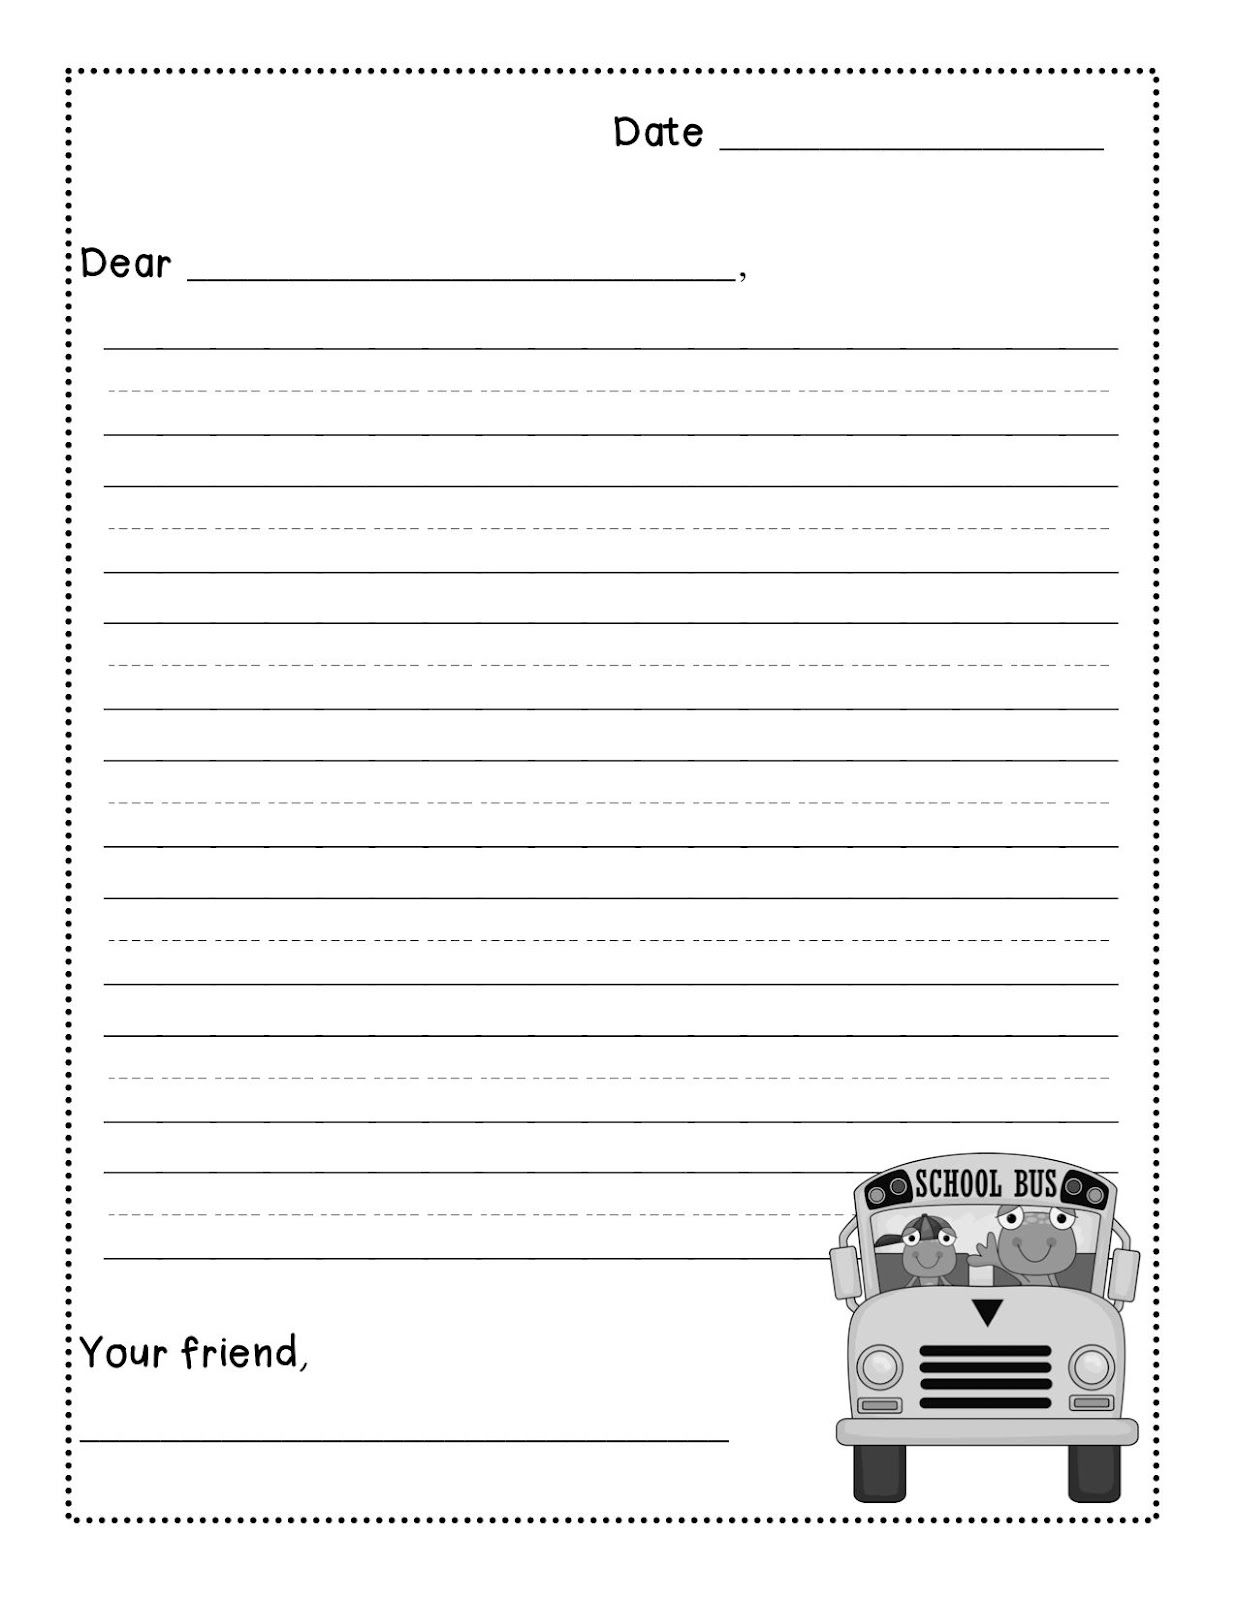 Friendly Letter Writing Freebie levelized templates up